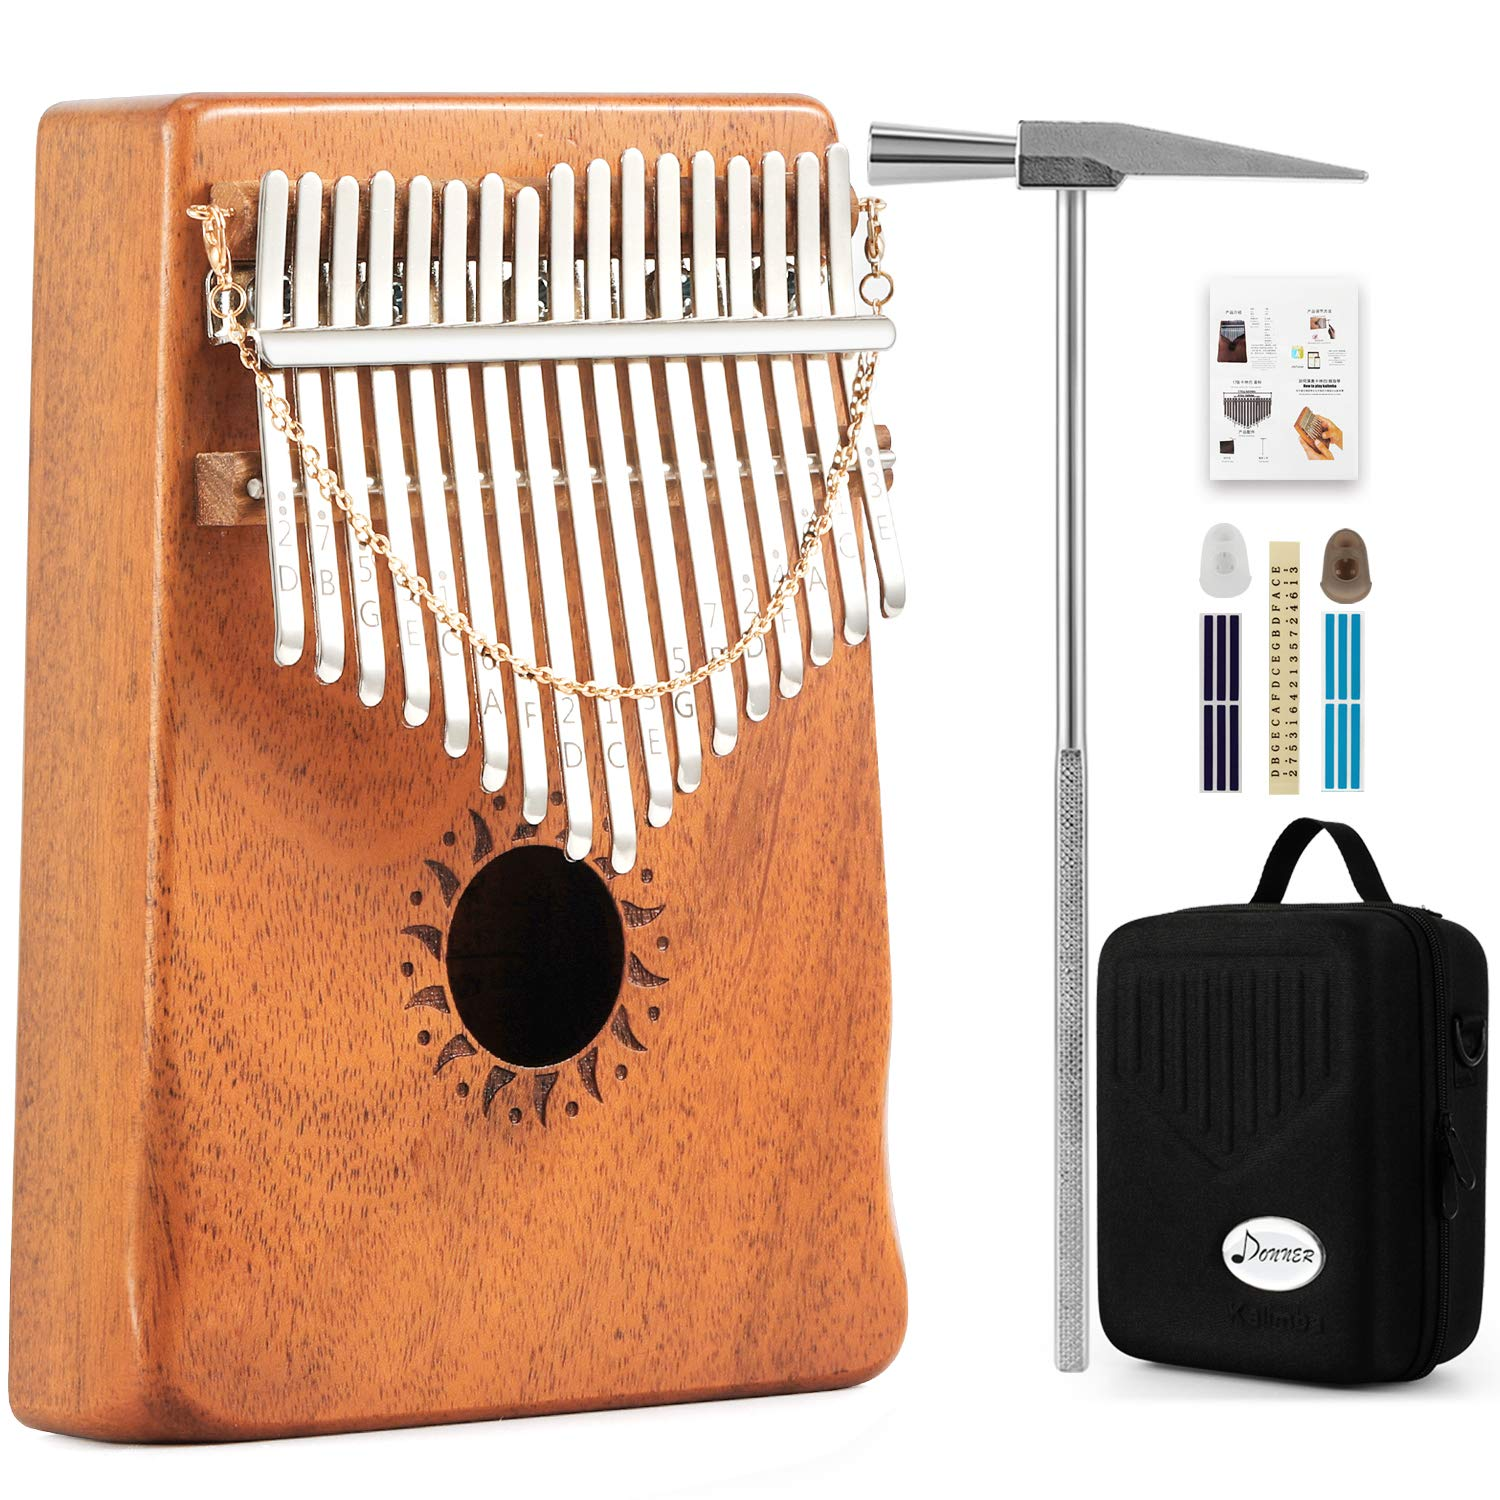 Donner 17 Key Kalimba Thumb Piano Solid Finger Piano Mahogany Body DKL-17 With Hard Case by Donner (Image #1)